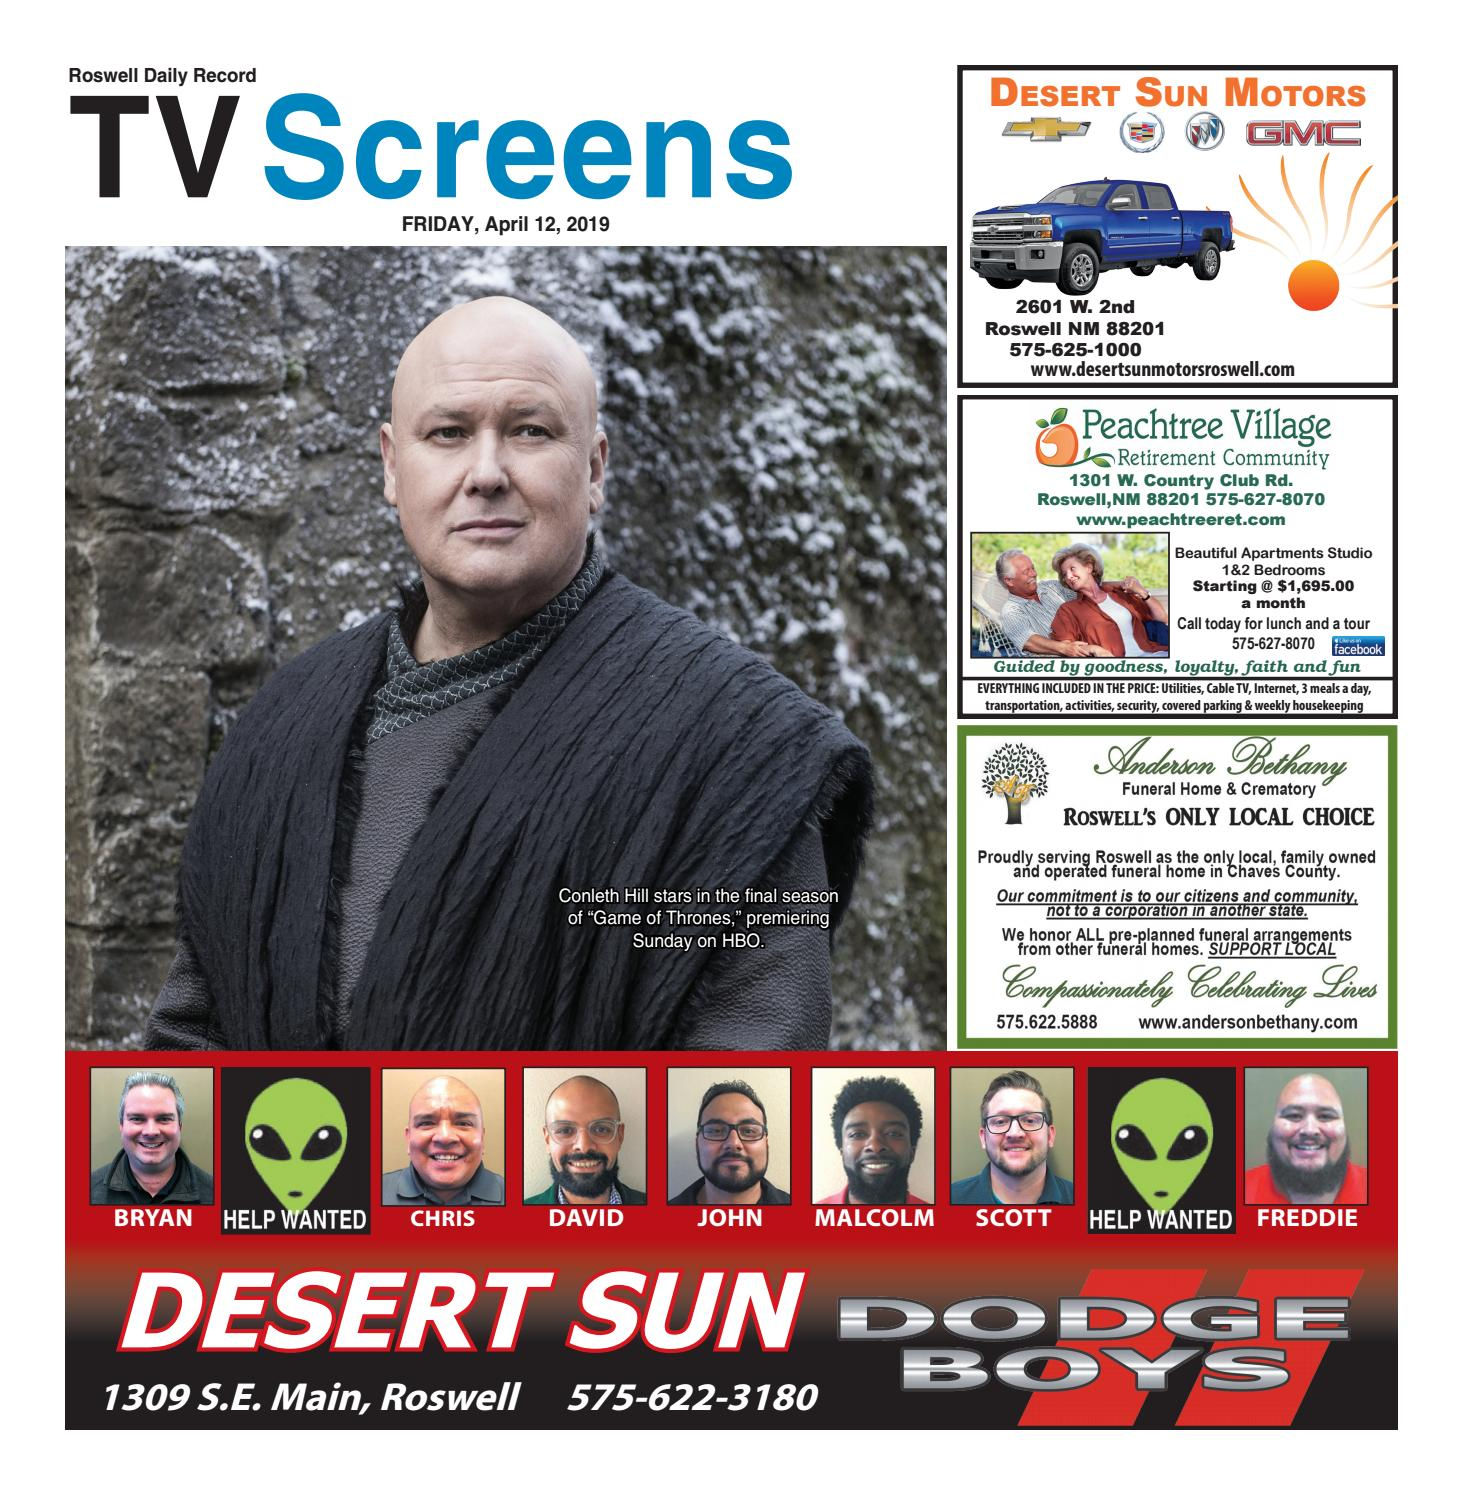 Actor Porno Gay Chris Hader screens 4 12 19roswell daily record - issuu